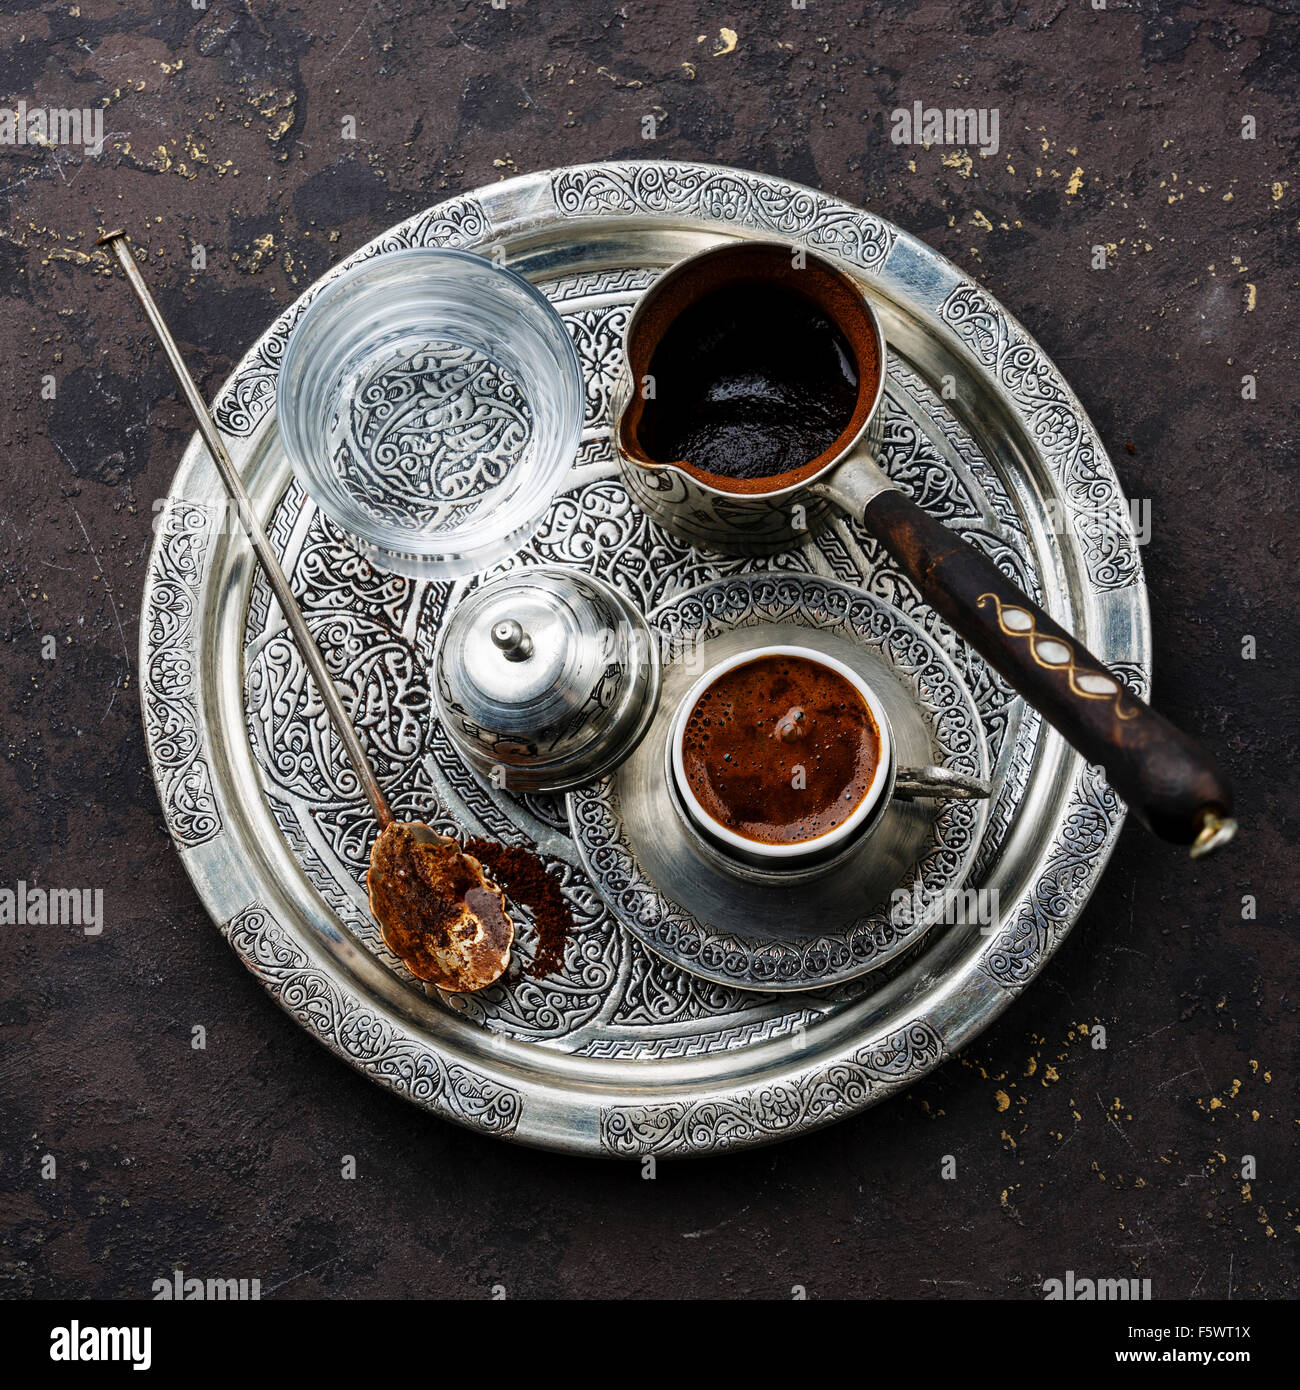 Turkish coffee in coffee pot and cold water on silver tray on black stone background - Stock Image